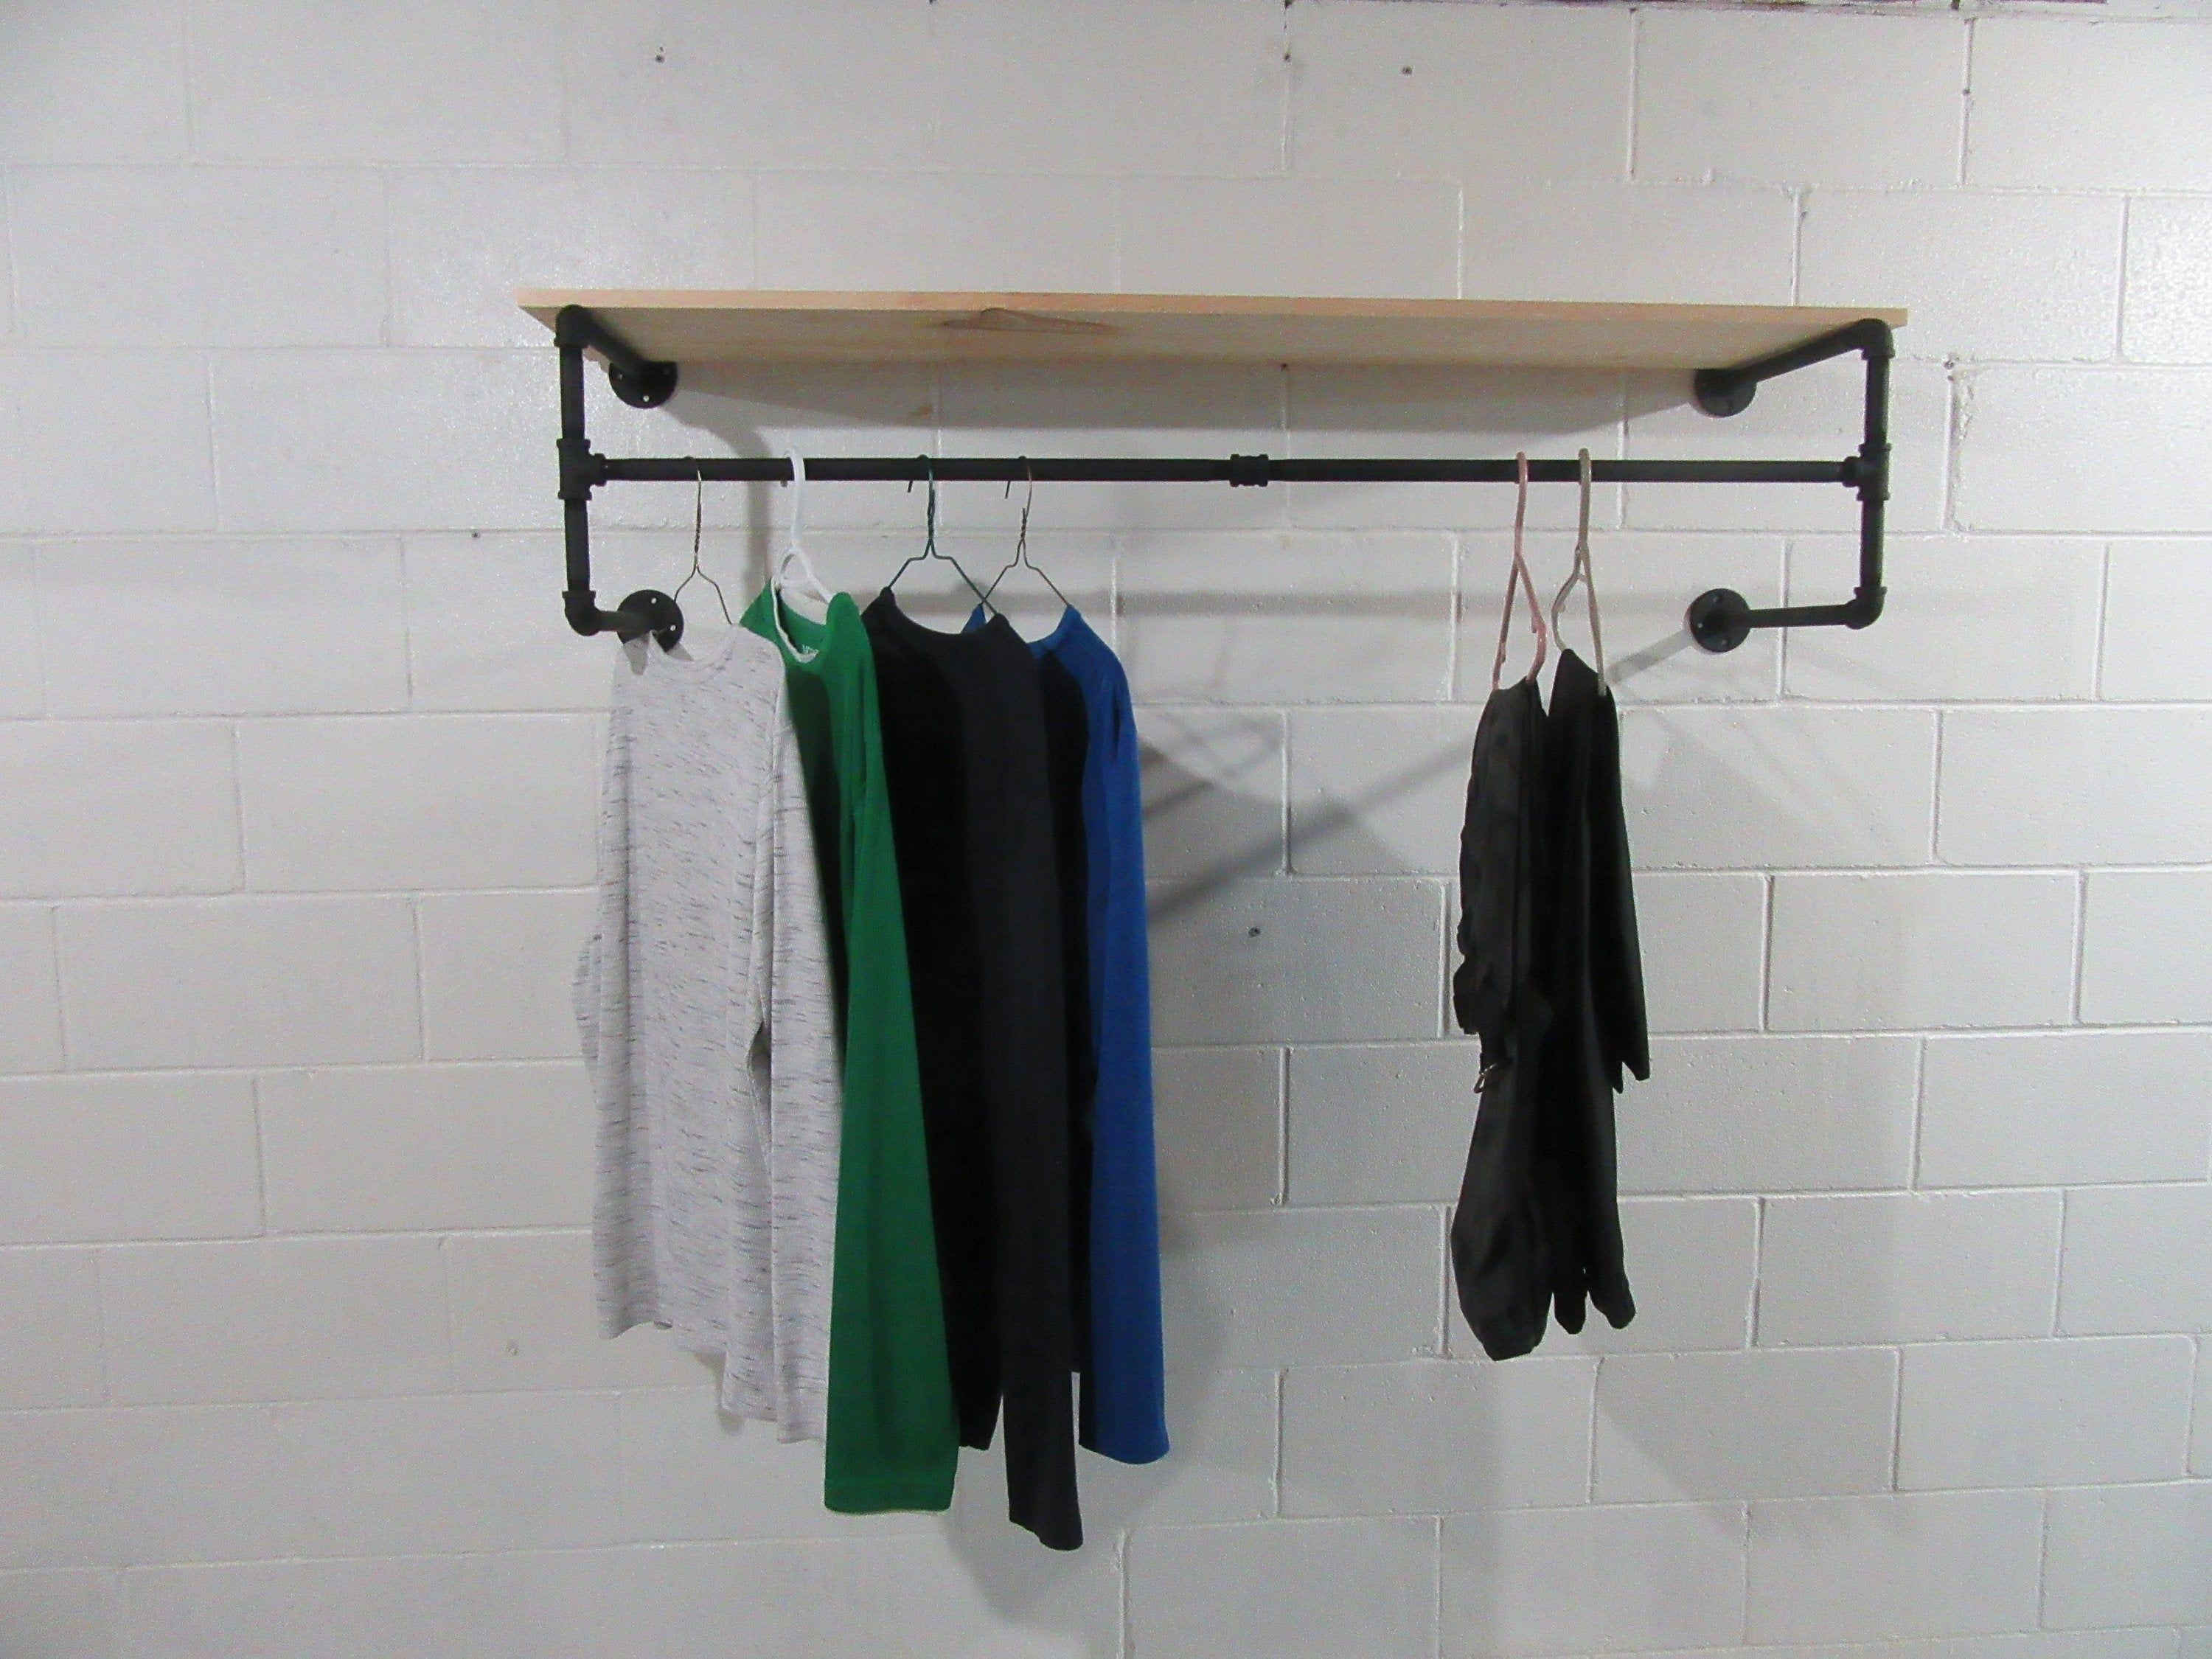 Item 507 1 2 Quad Mount Steampunk Industrial Design Clothing Rack Wall Mounted Clothes Rack Garment Rack Retail Rack Display In 2020 Clothing Rack Design Rack